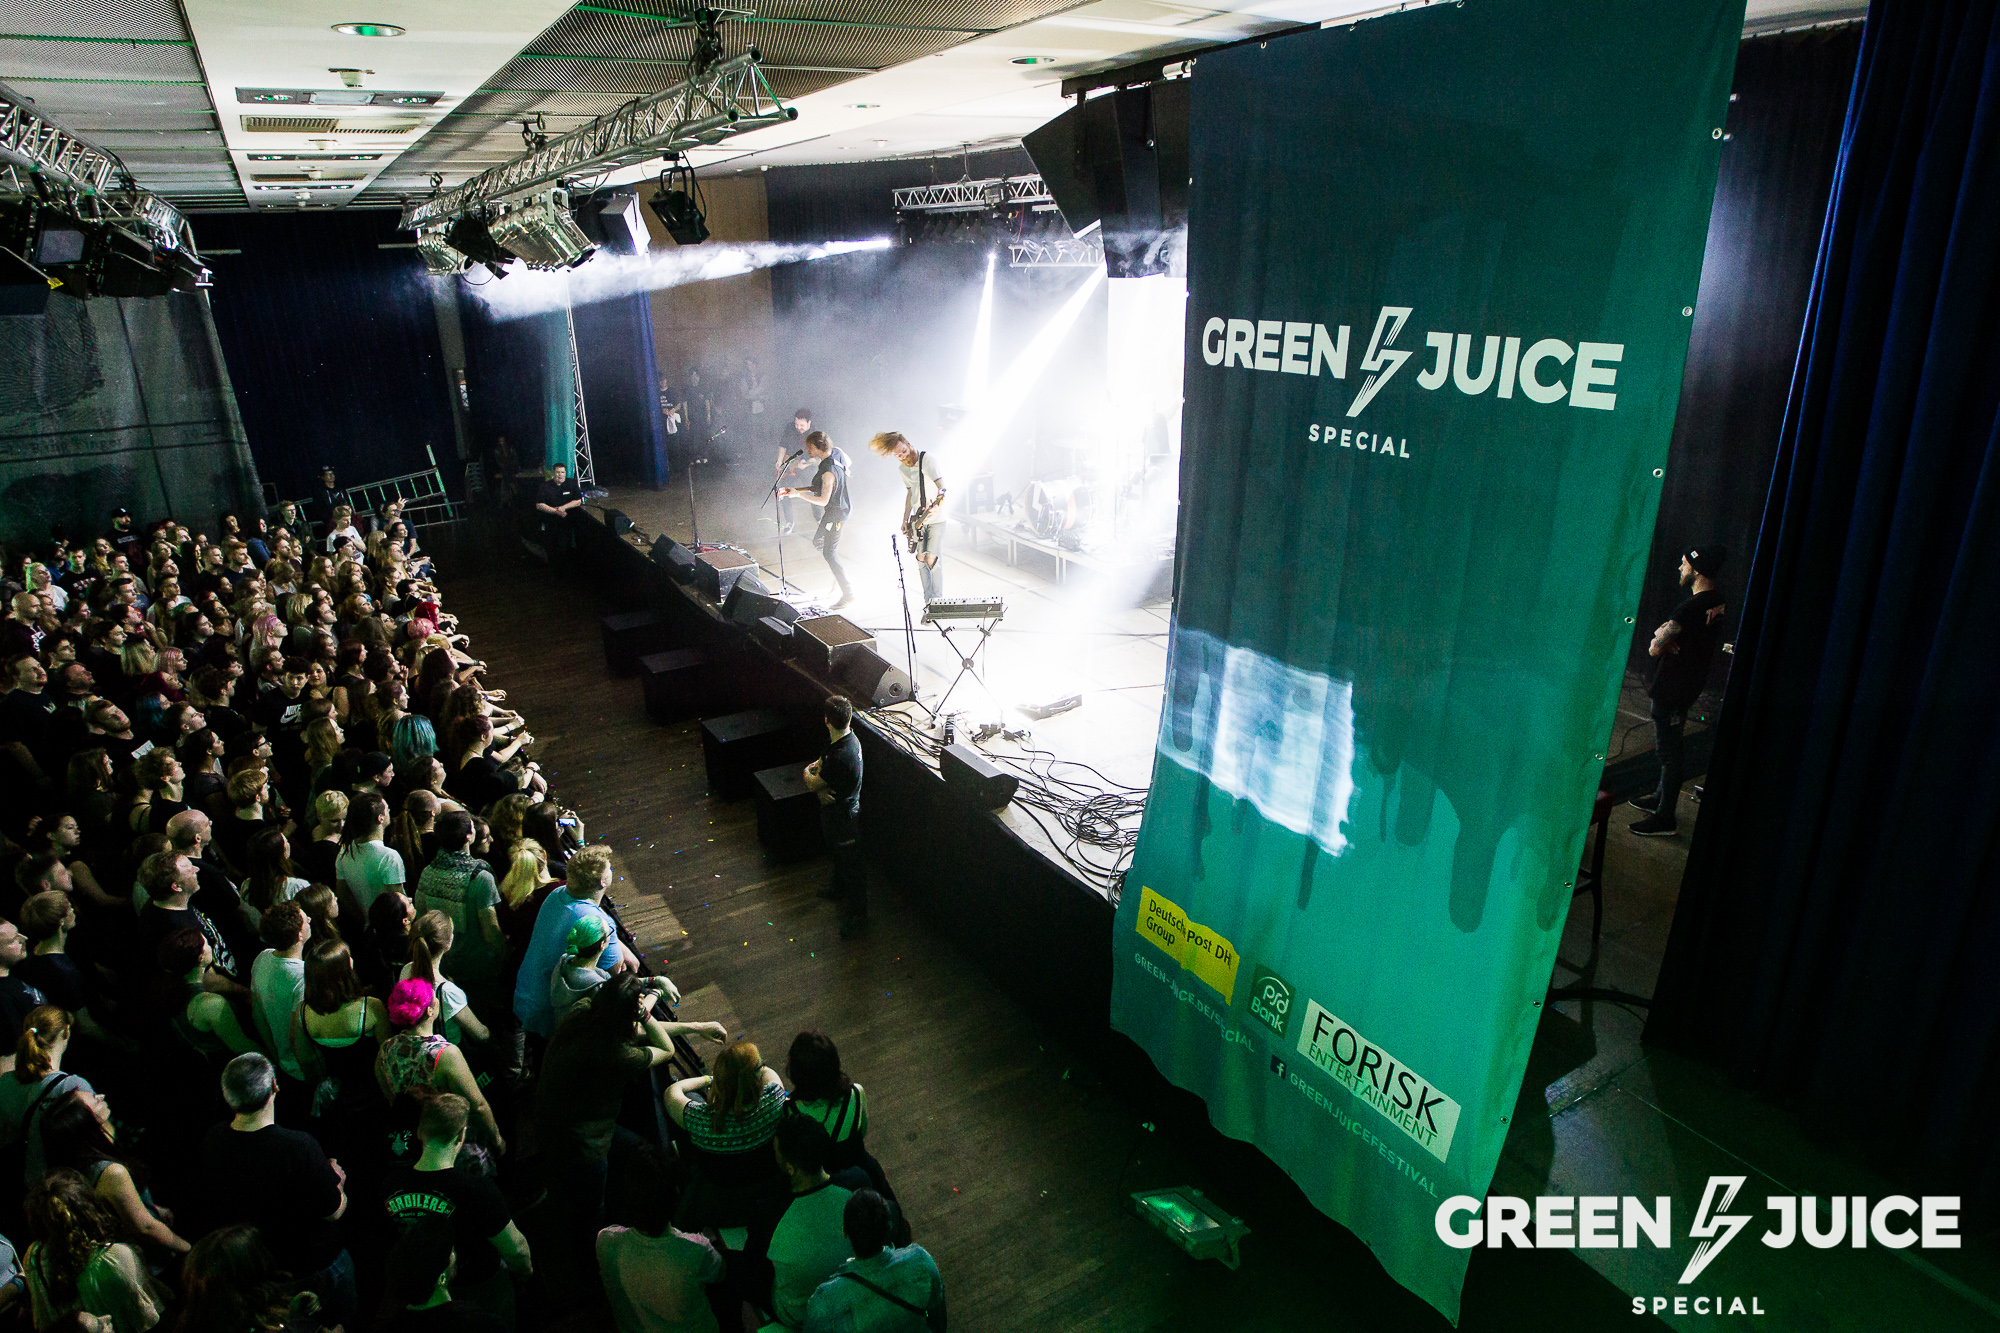 xxx am 03. April 2016 beim Green Juice Special #1 im Brückenforum in Bonn.